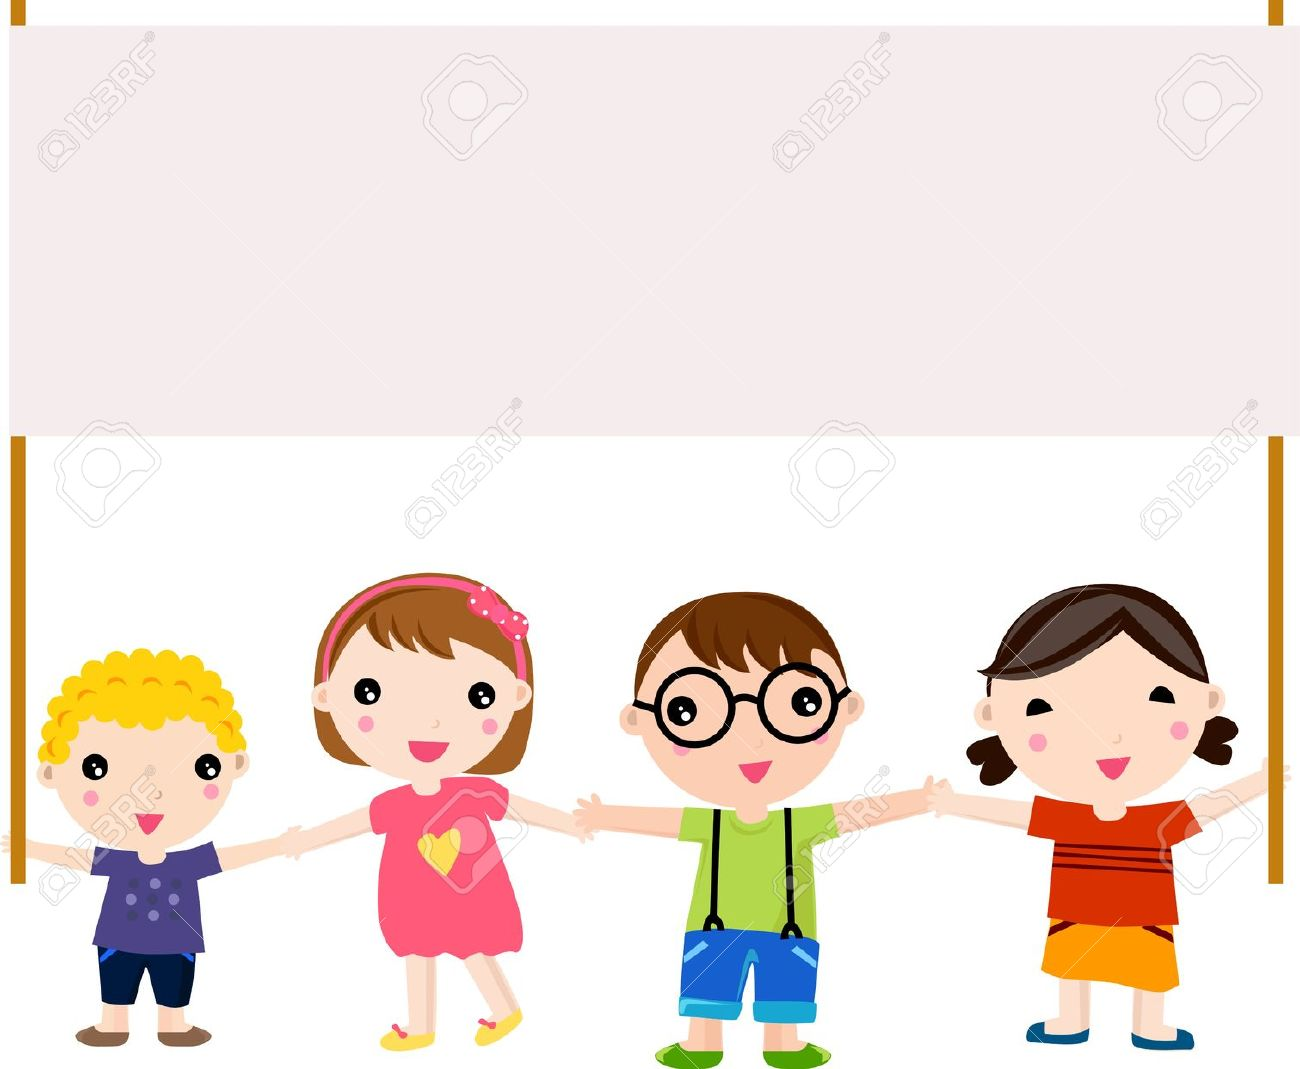 Children marching clipart image library download Children Cartoon Clipart 23 - 1300 X 1069 - Making-The-Web.com image library download